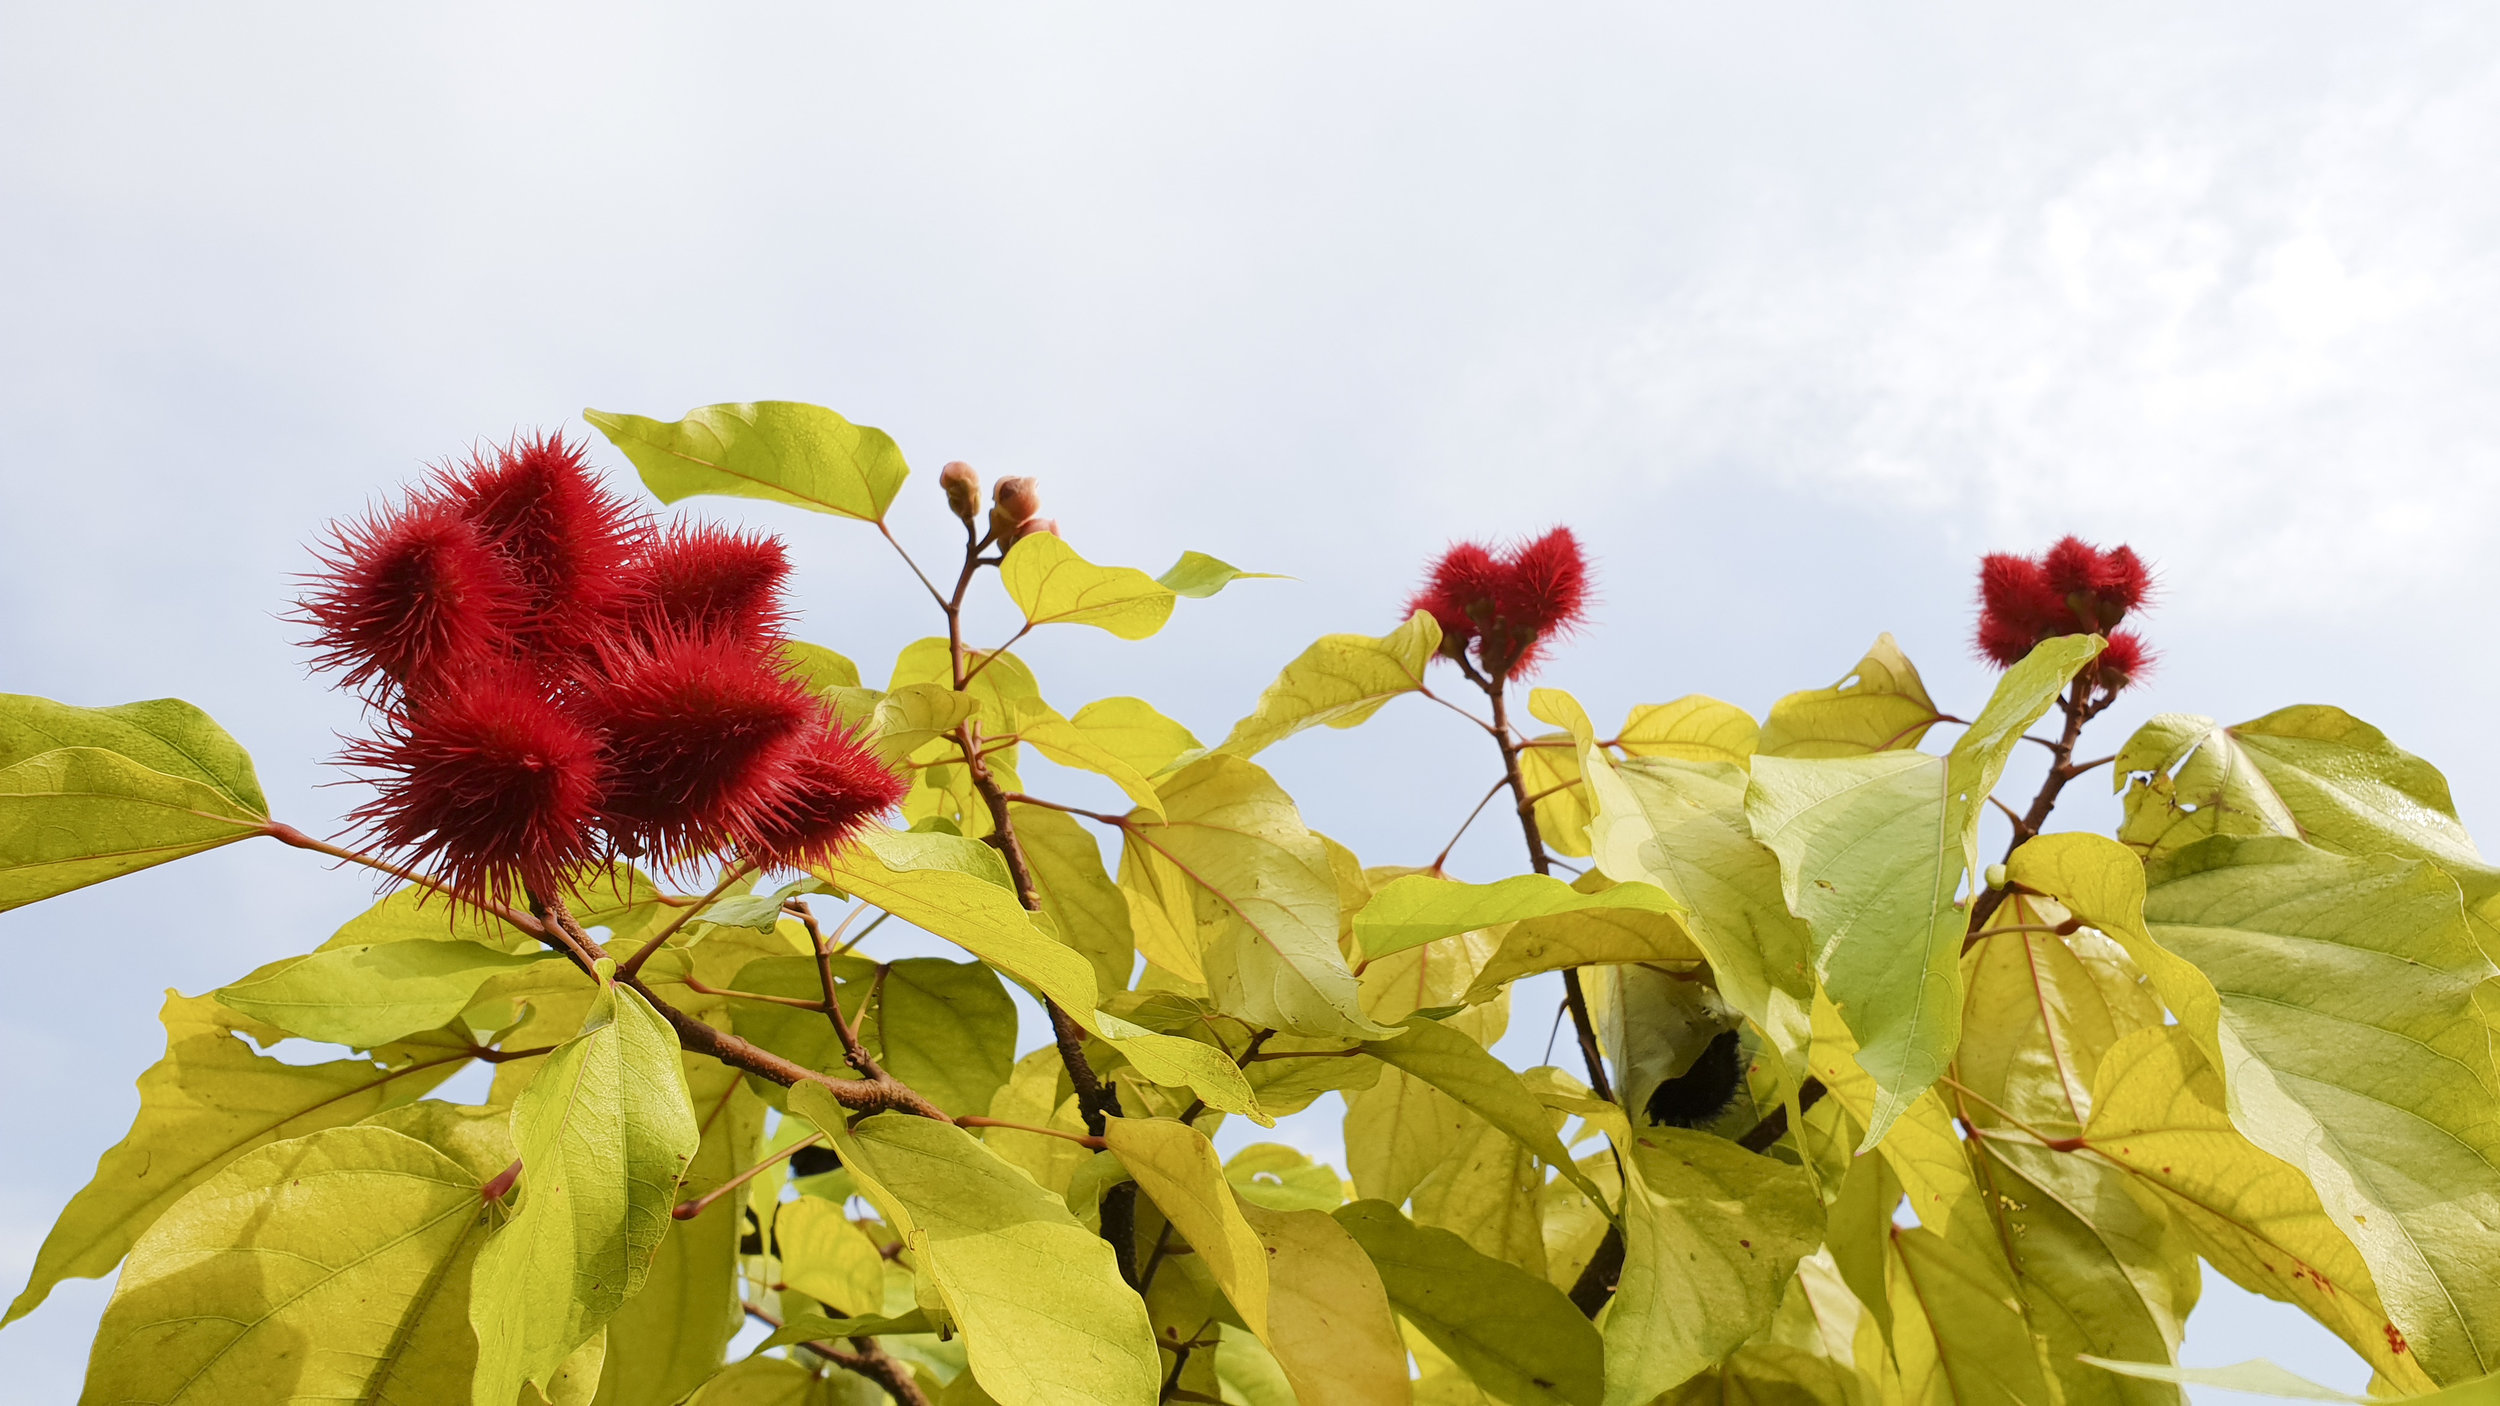 Lipstick Plant (the red fruits of this tree are used to make red body paint and lipstick)